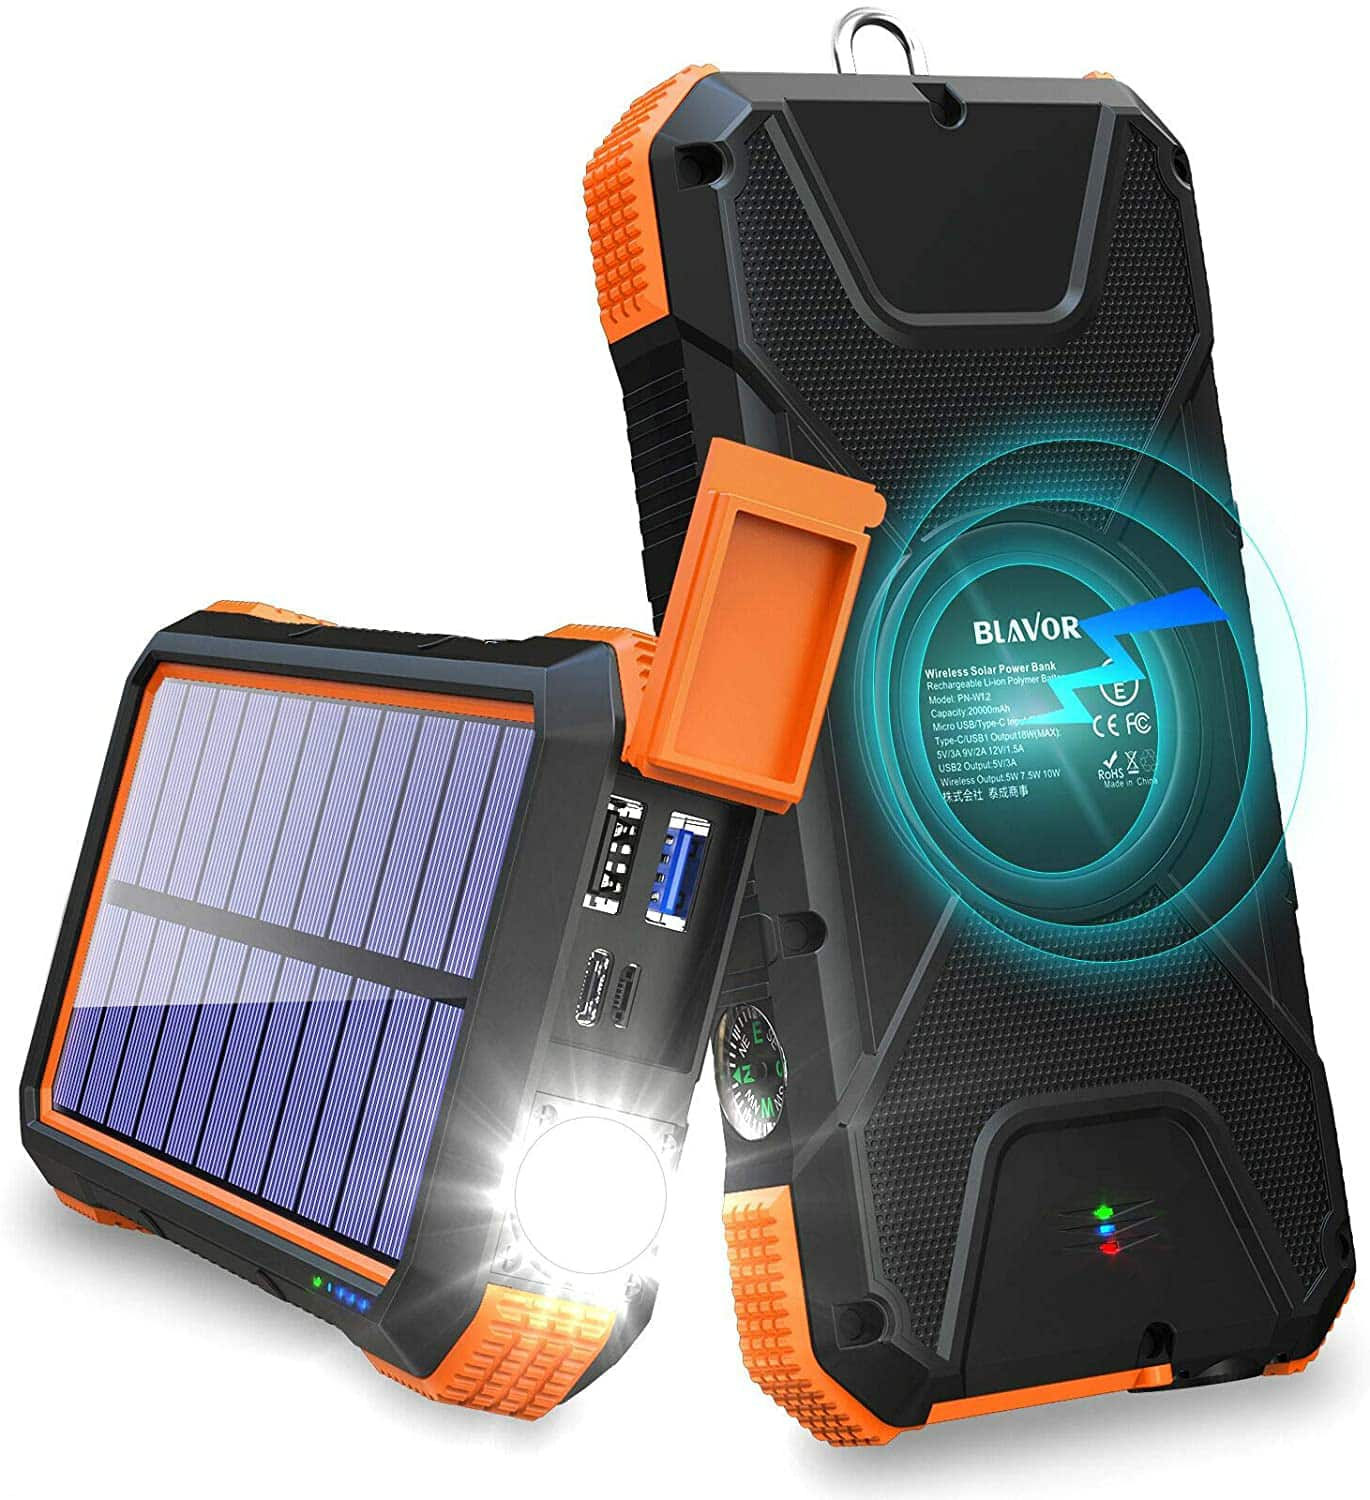 Amazon.com: BLAVOR Solar Charger Power Bank 18W, QC 3.0 Portable Wireless Charger 10W/7.5W/5W with 4 Outputs & Dual Inputs, 20000mAh External Battery Pack IPX5 Waterproof $37